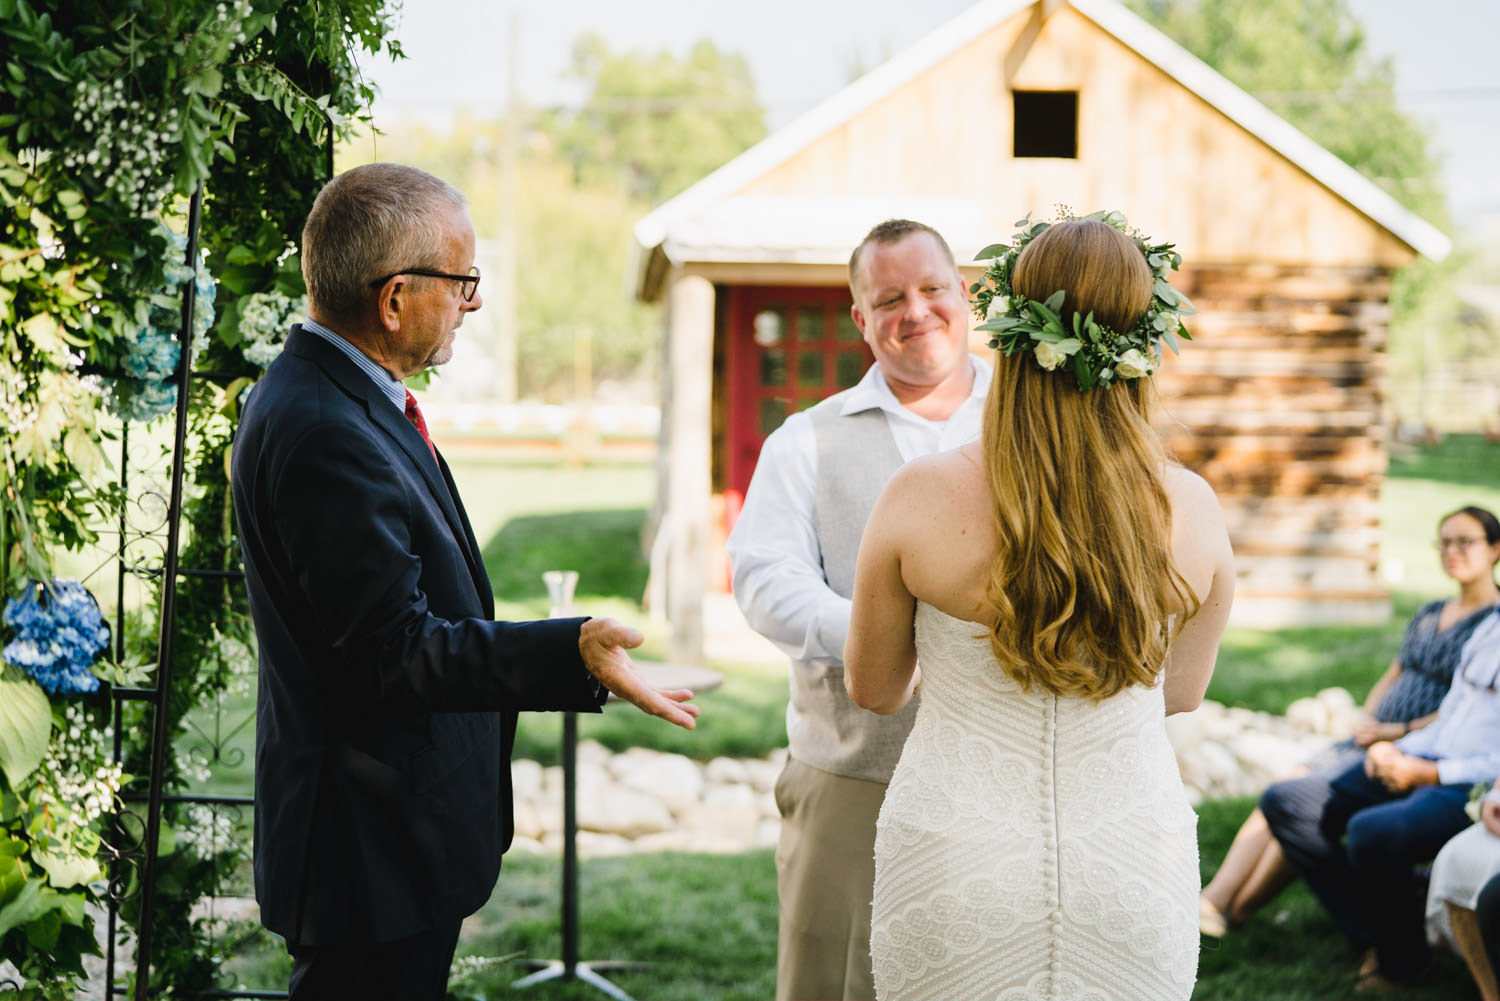 Spring Farm wedding bride, groom and officiant photo